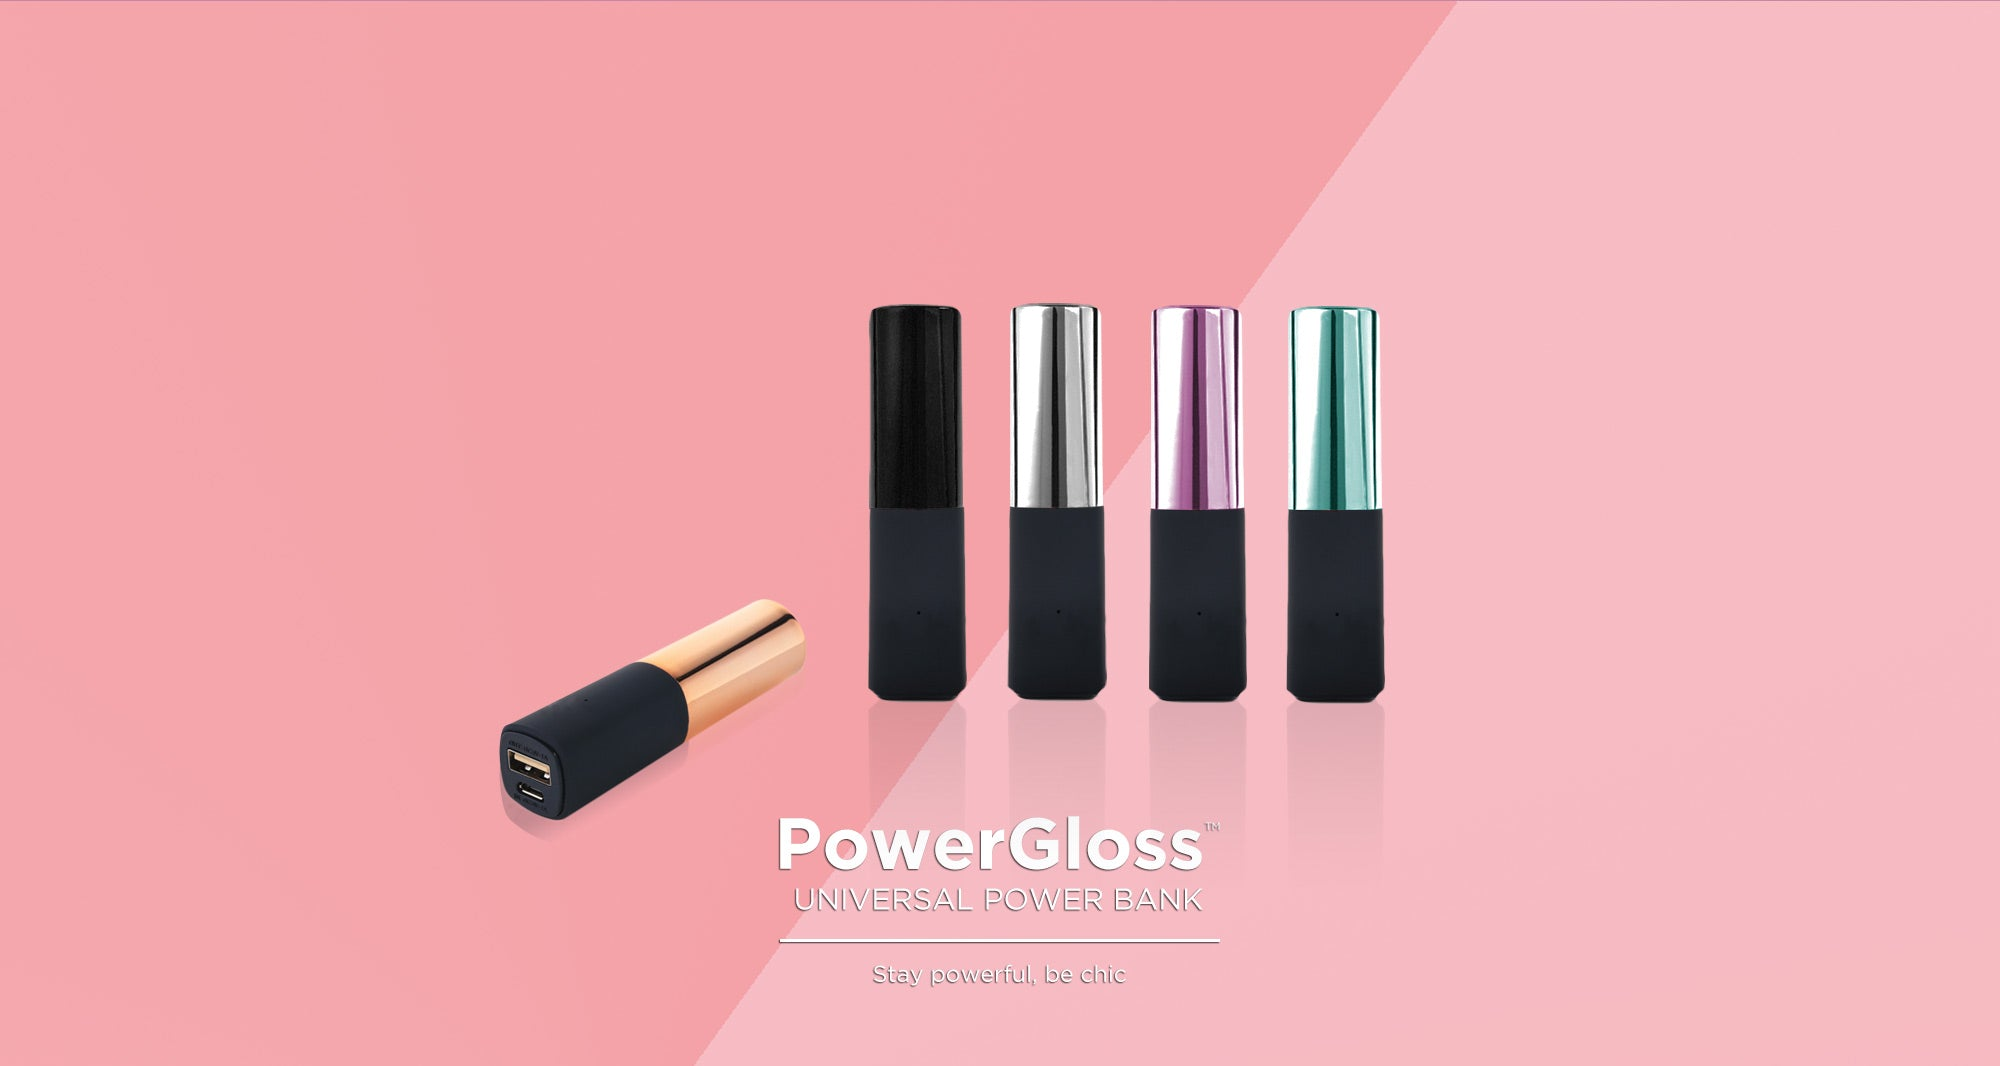 Power Bank, lip gloss, power gloss